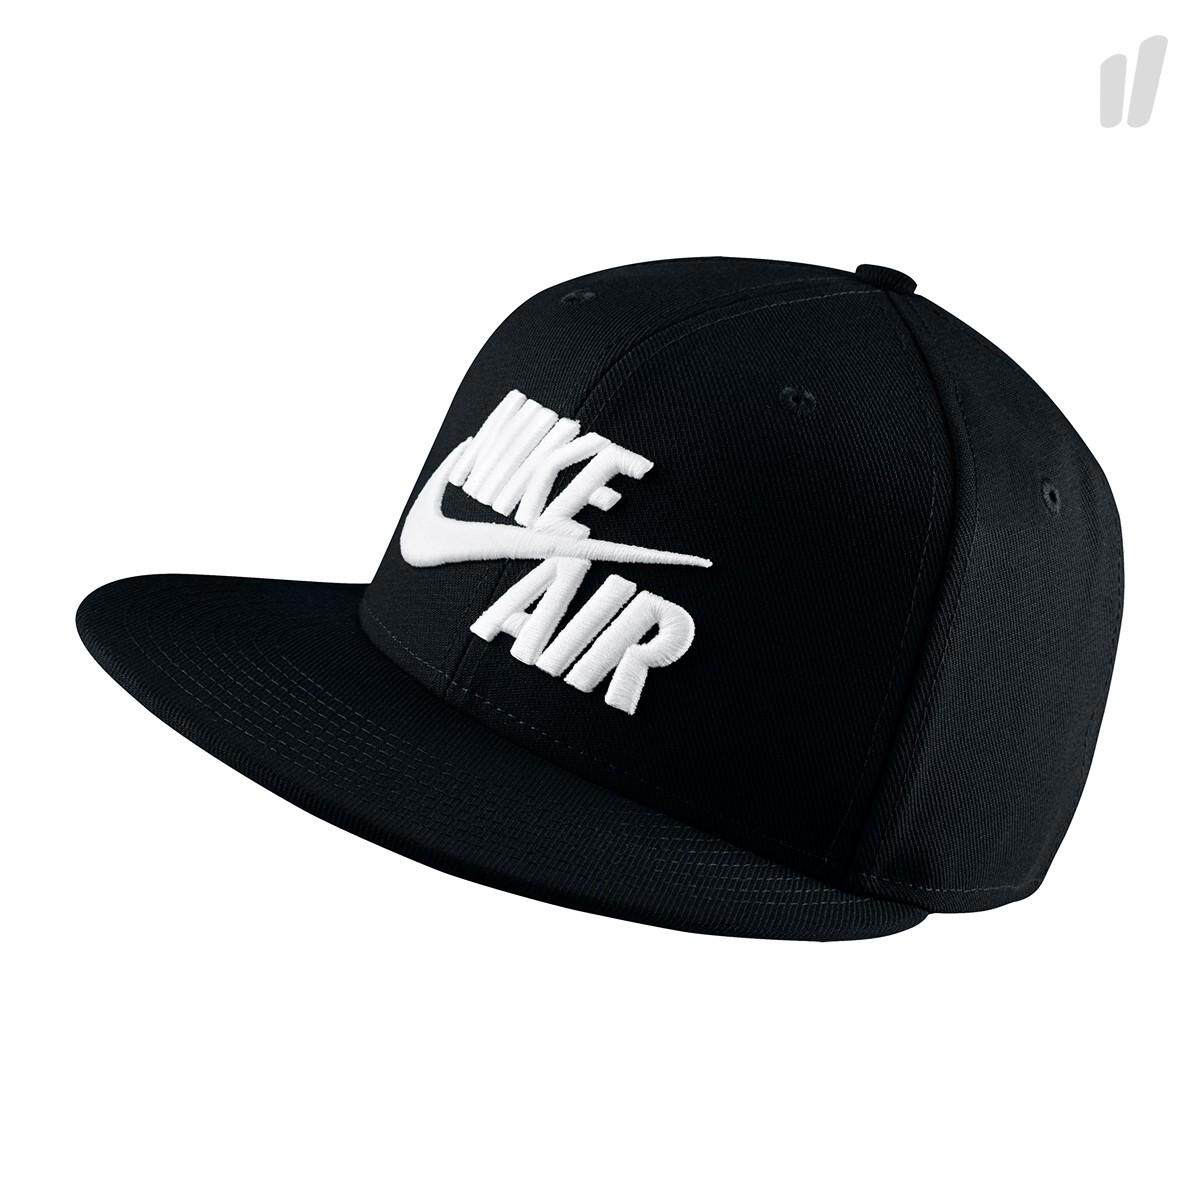 9d29c0816338 Nike Men s Hats price in Malaysia - Best Nike Men s Hats